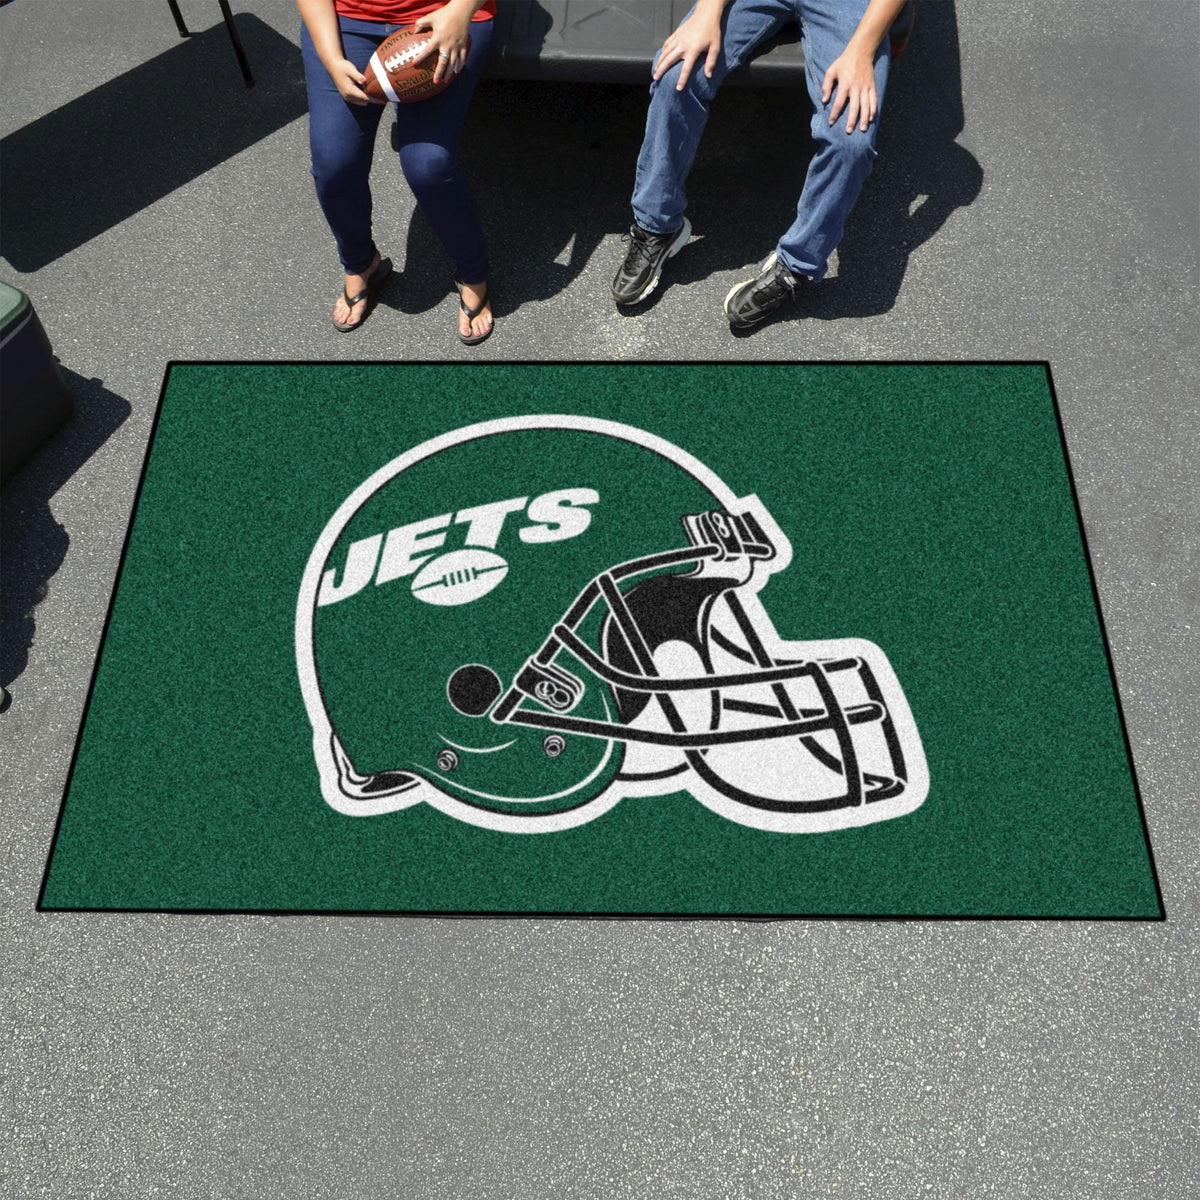 "NFL - Ulti-Mat, 59.5"" x 94.5"" NFL Mats, Rectangular Mats, Ulti-Mat, NFL, Home Fan Mats New York Jets"